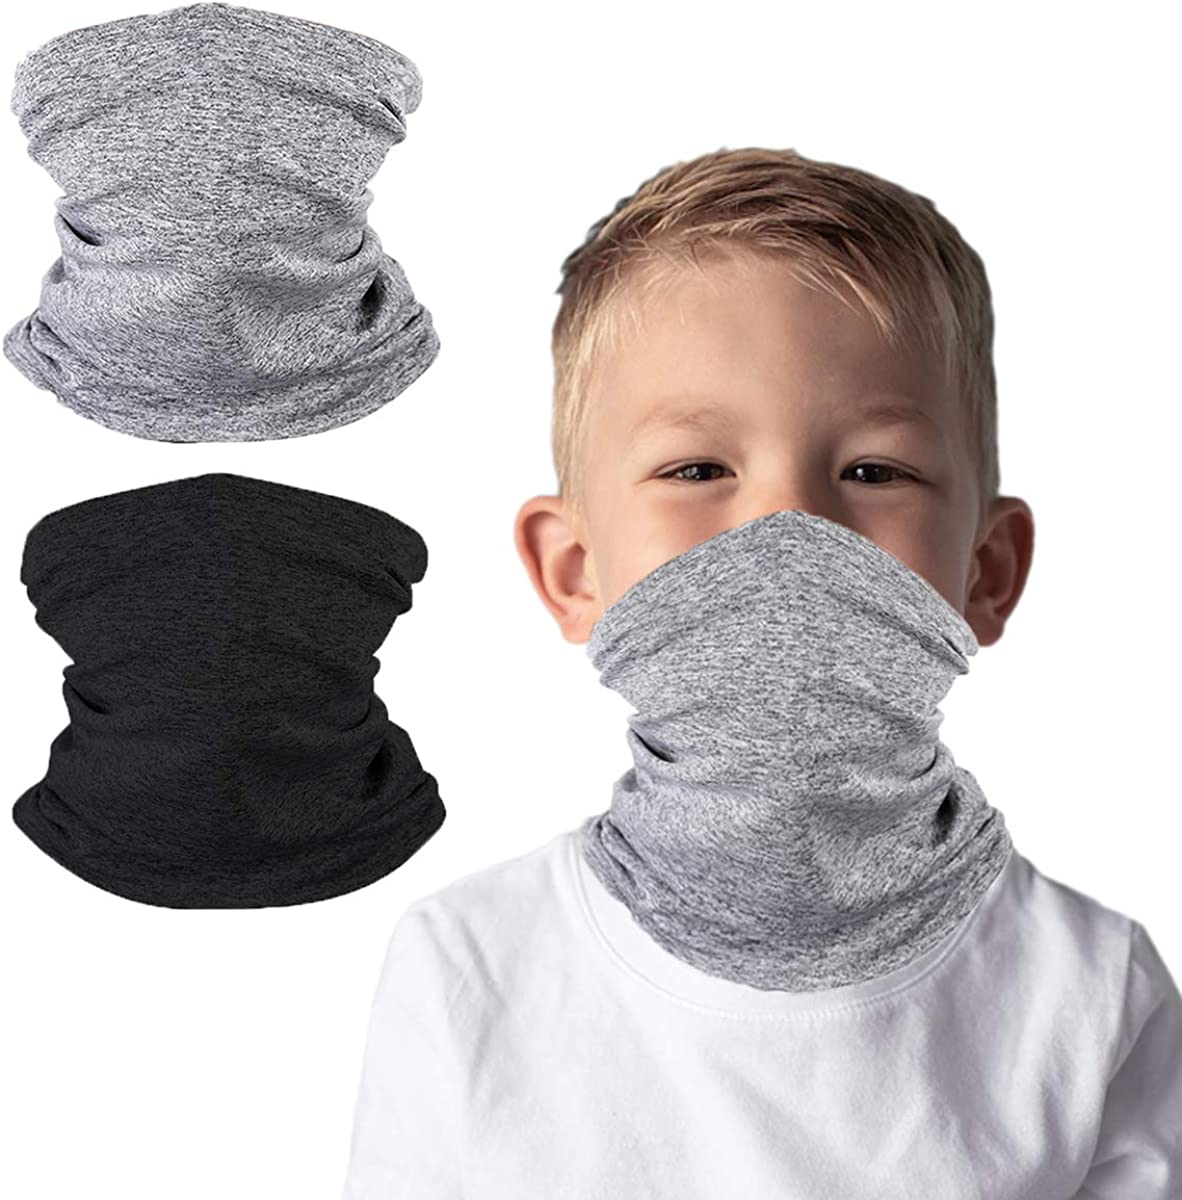 Kids Face Cover Neck Gaiter for Cycling Hiking Fishing Sport...